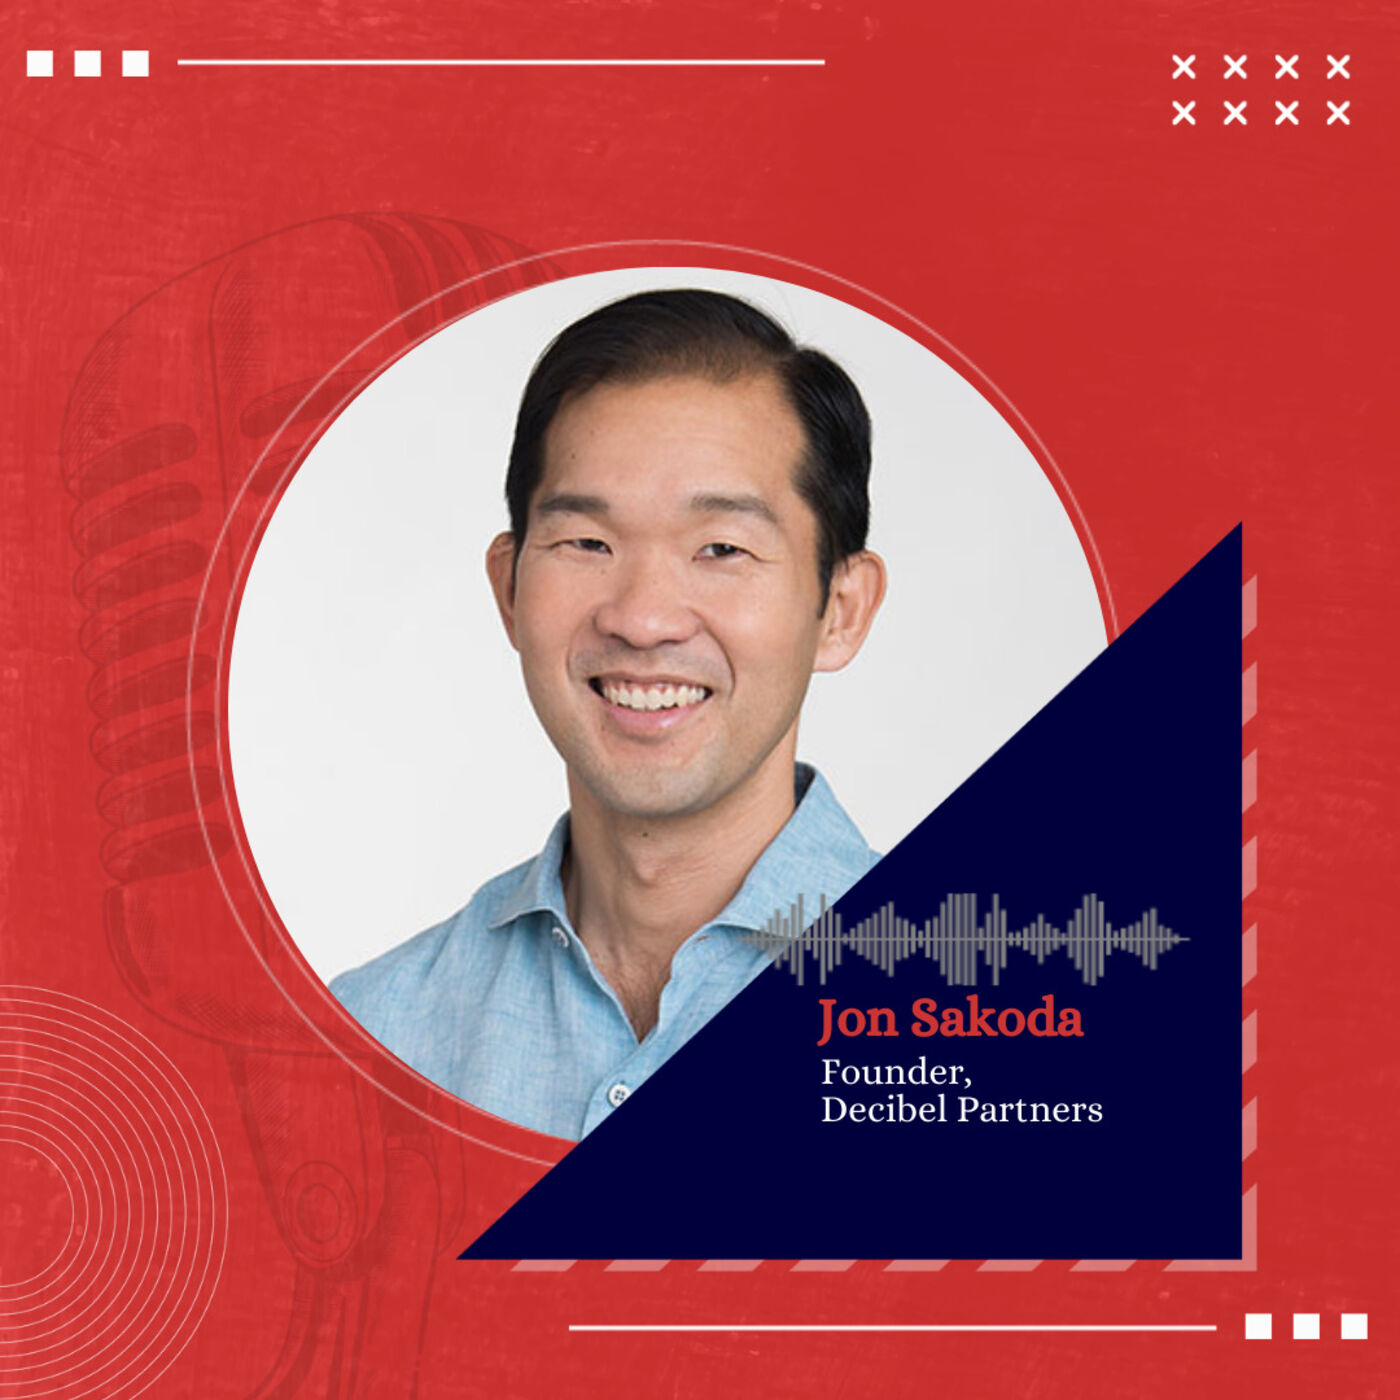 Jon Sakoda, Founder, Decibel Partners on investing and importance of having a coach for early stage founders